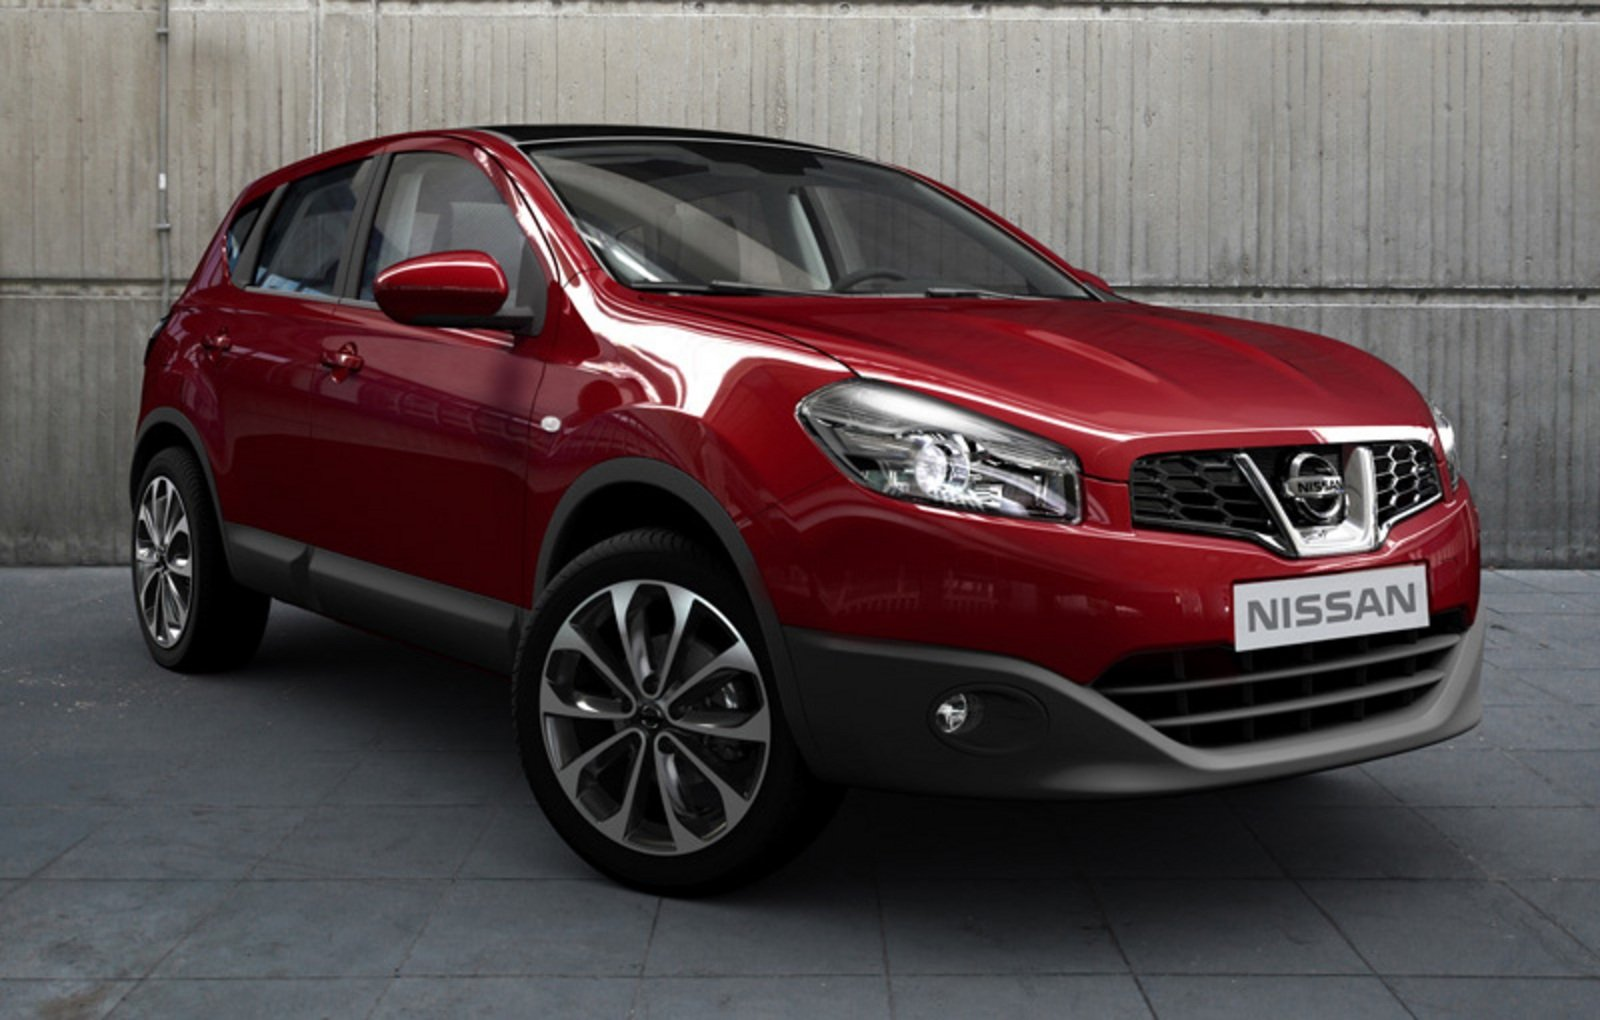 2011 nissan qashqai facelift review top speed. Black Bedroom Furniture Sets. Home Design Ideas